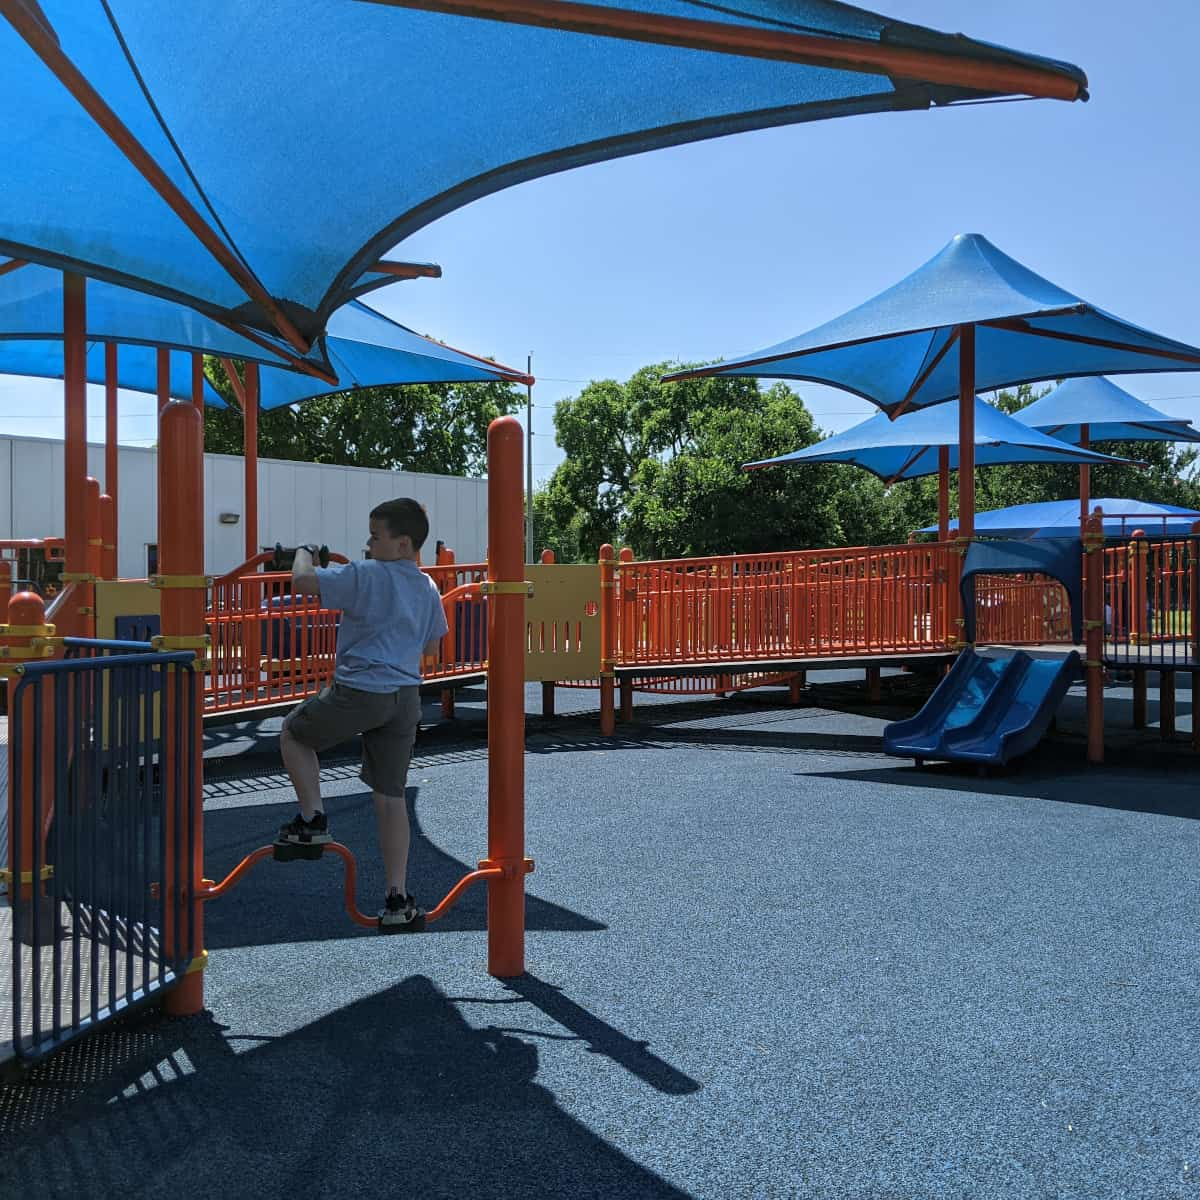 West Gray Rec Center Playground without limits